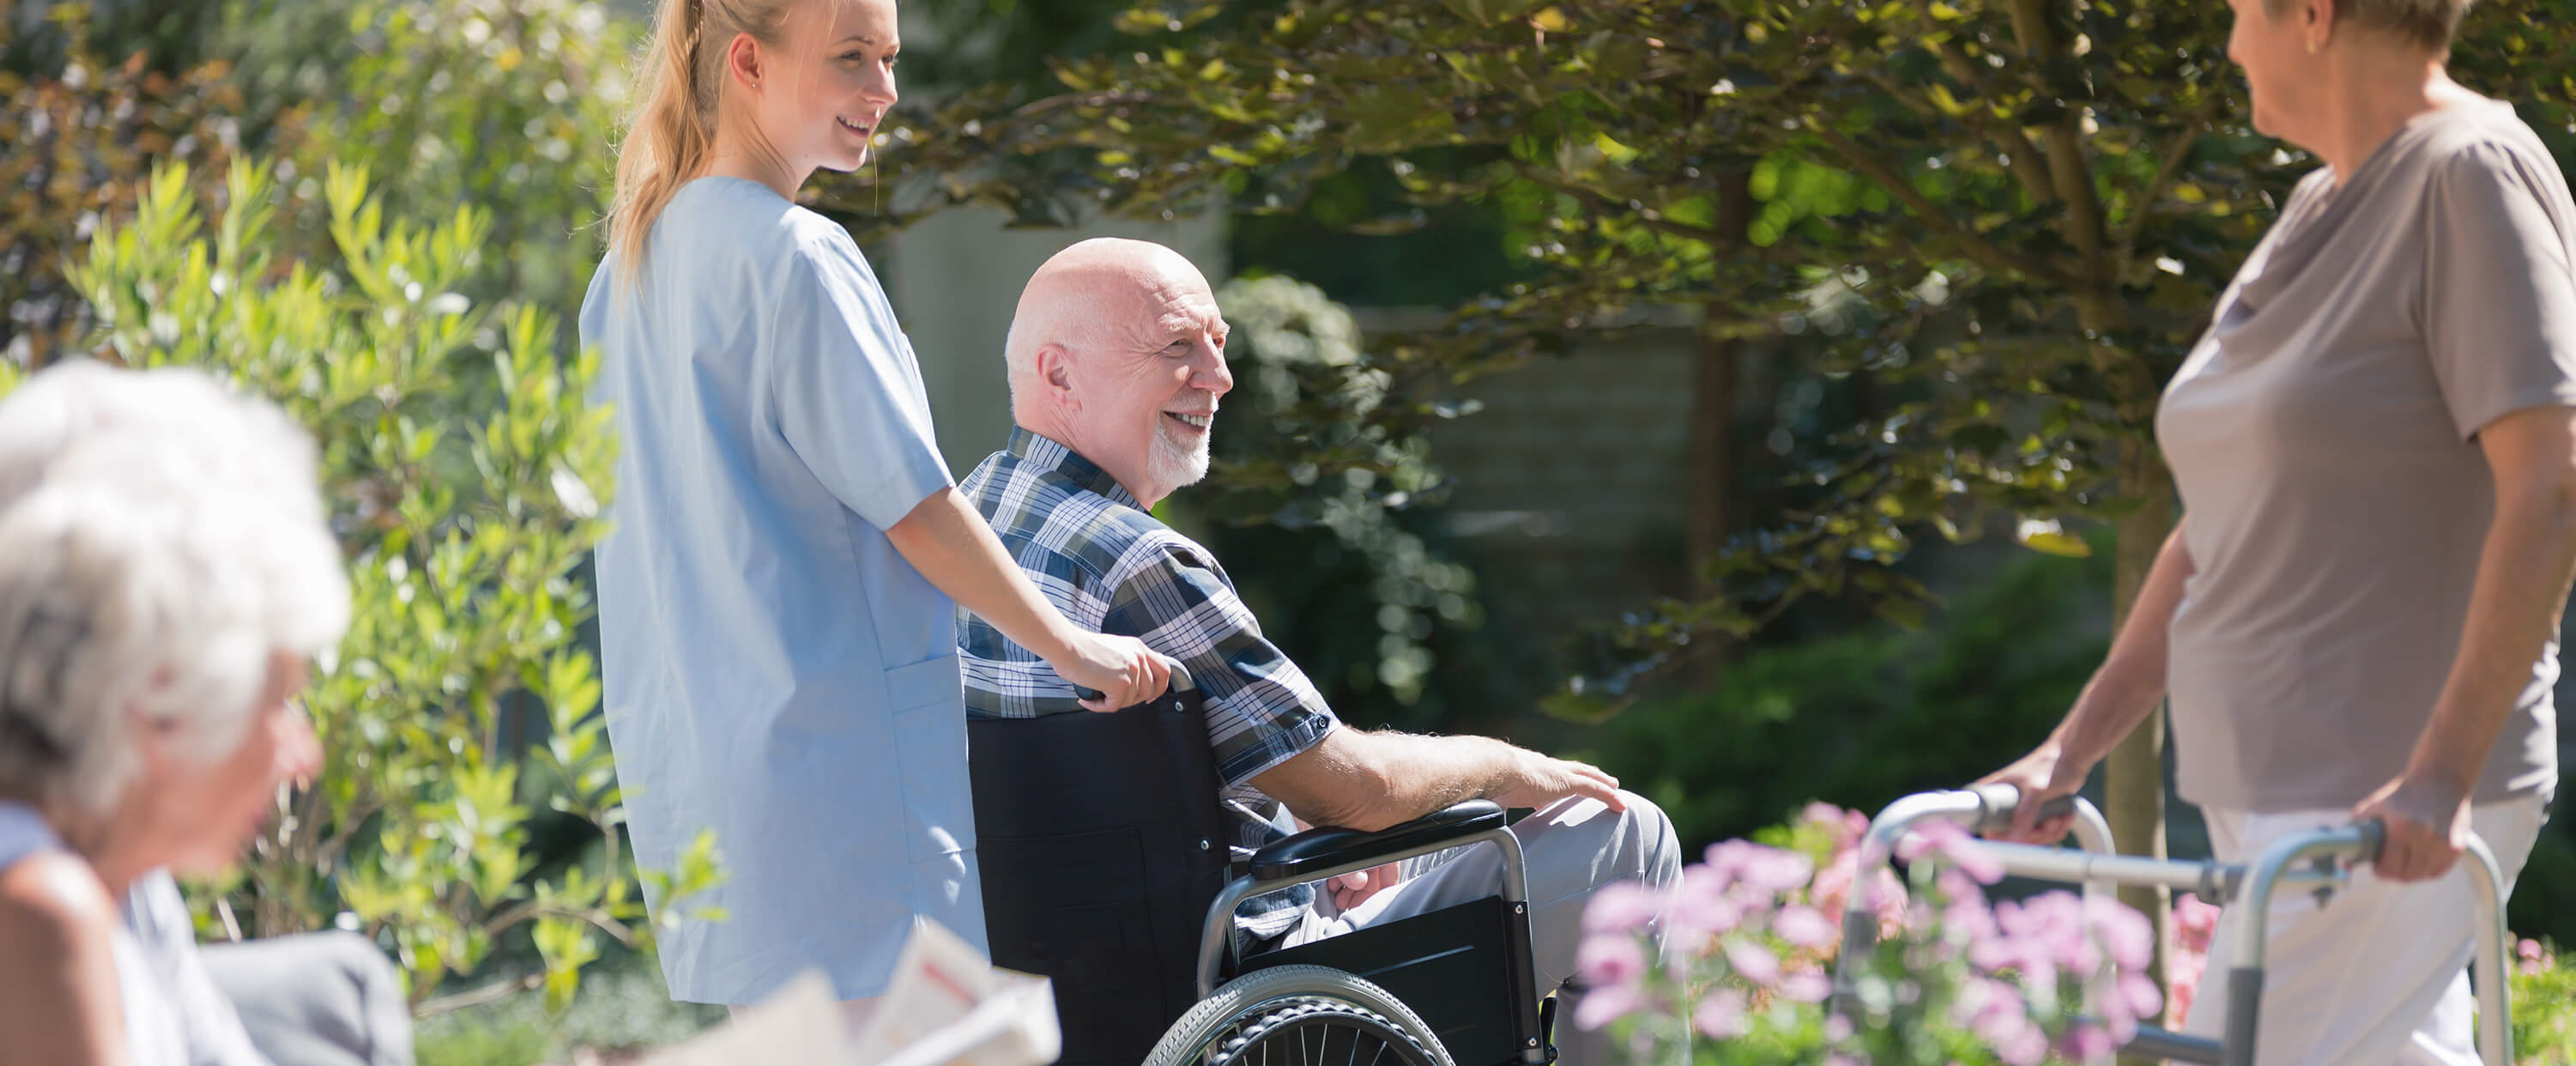 Northleach Court Care Home fees page image